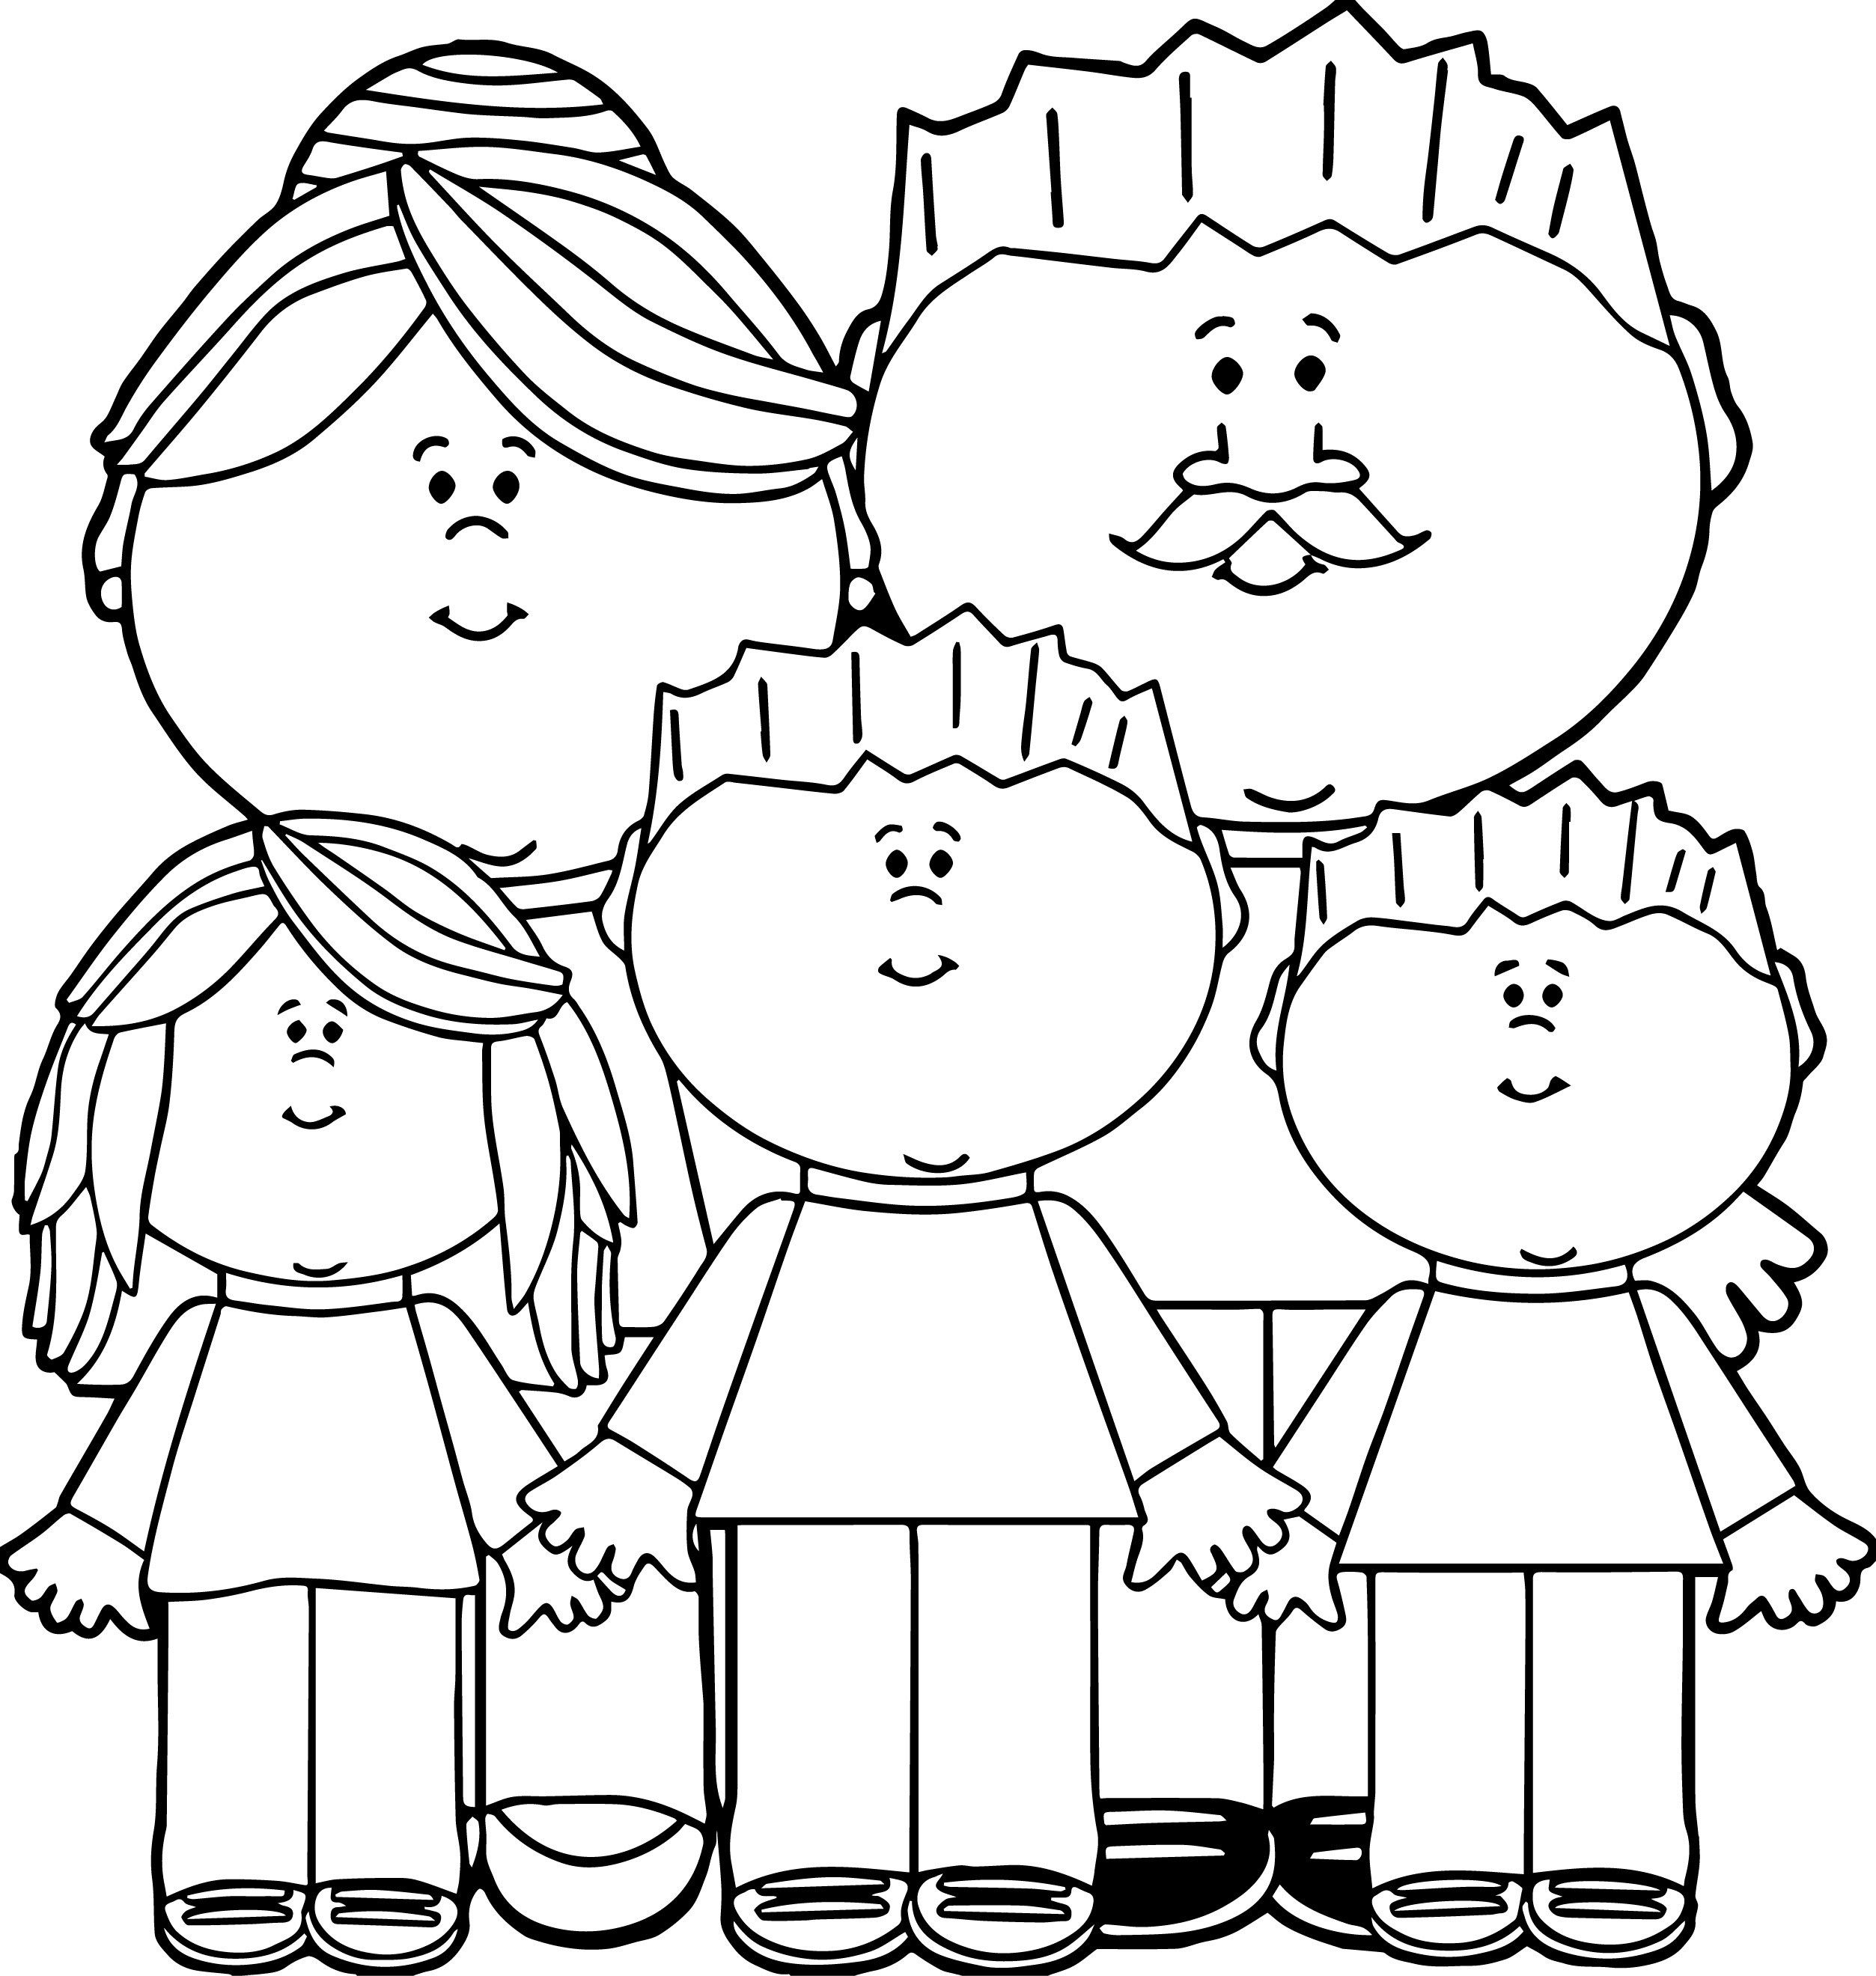 Help parents clipart black and white image royalty free Parents clipart black and white 5 » Clipart Portal image royalty free